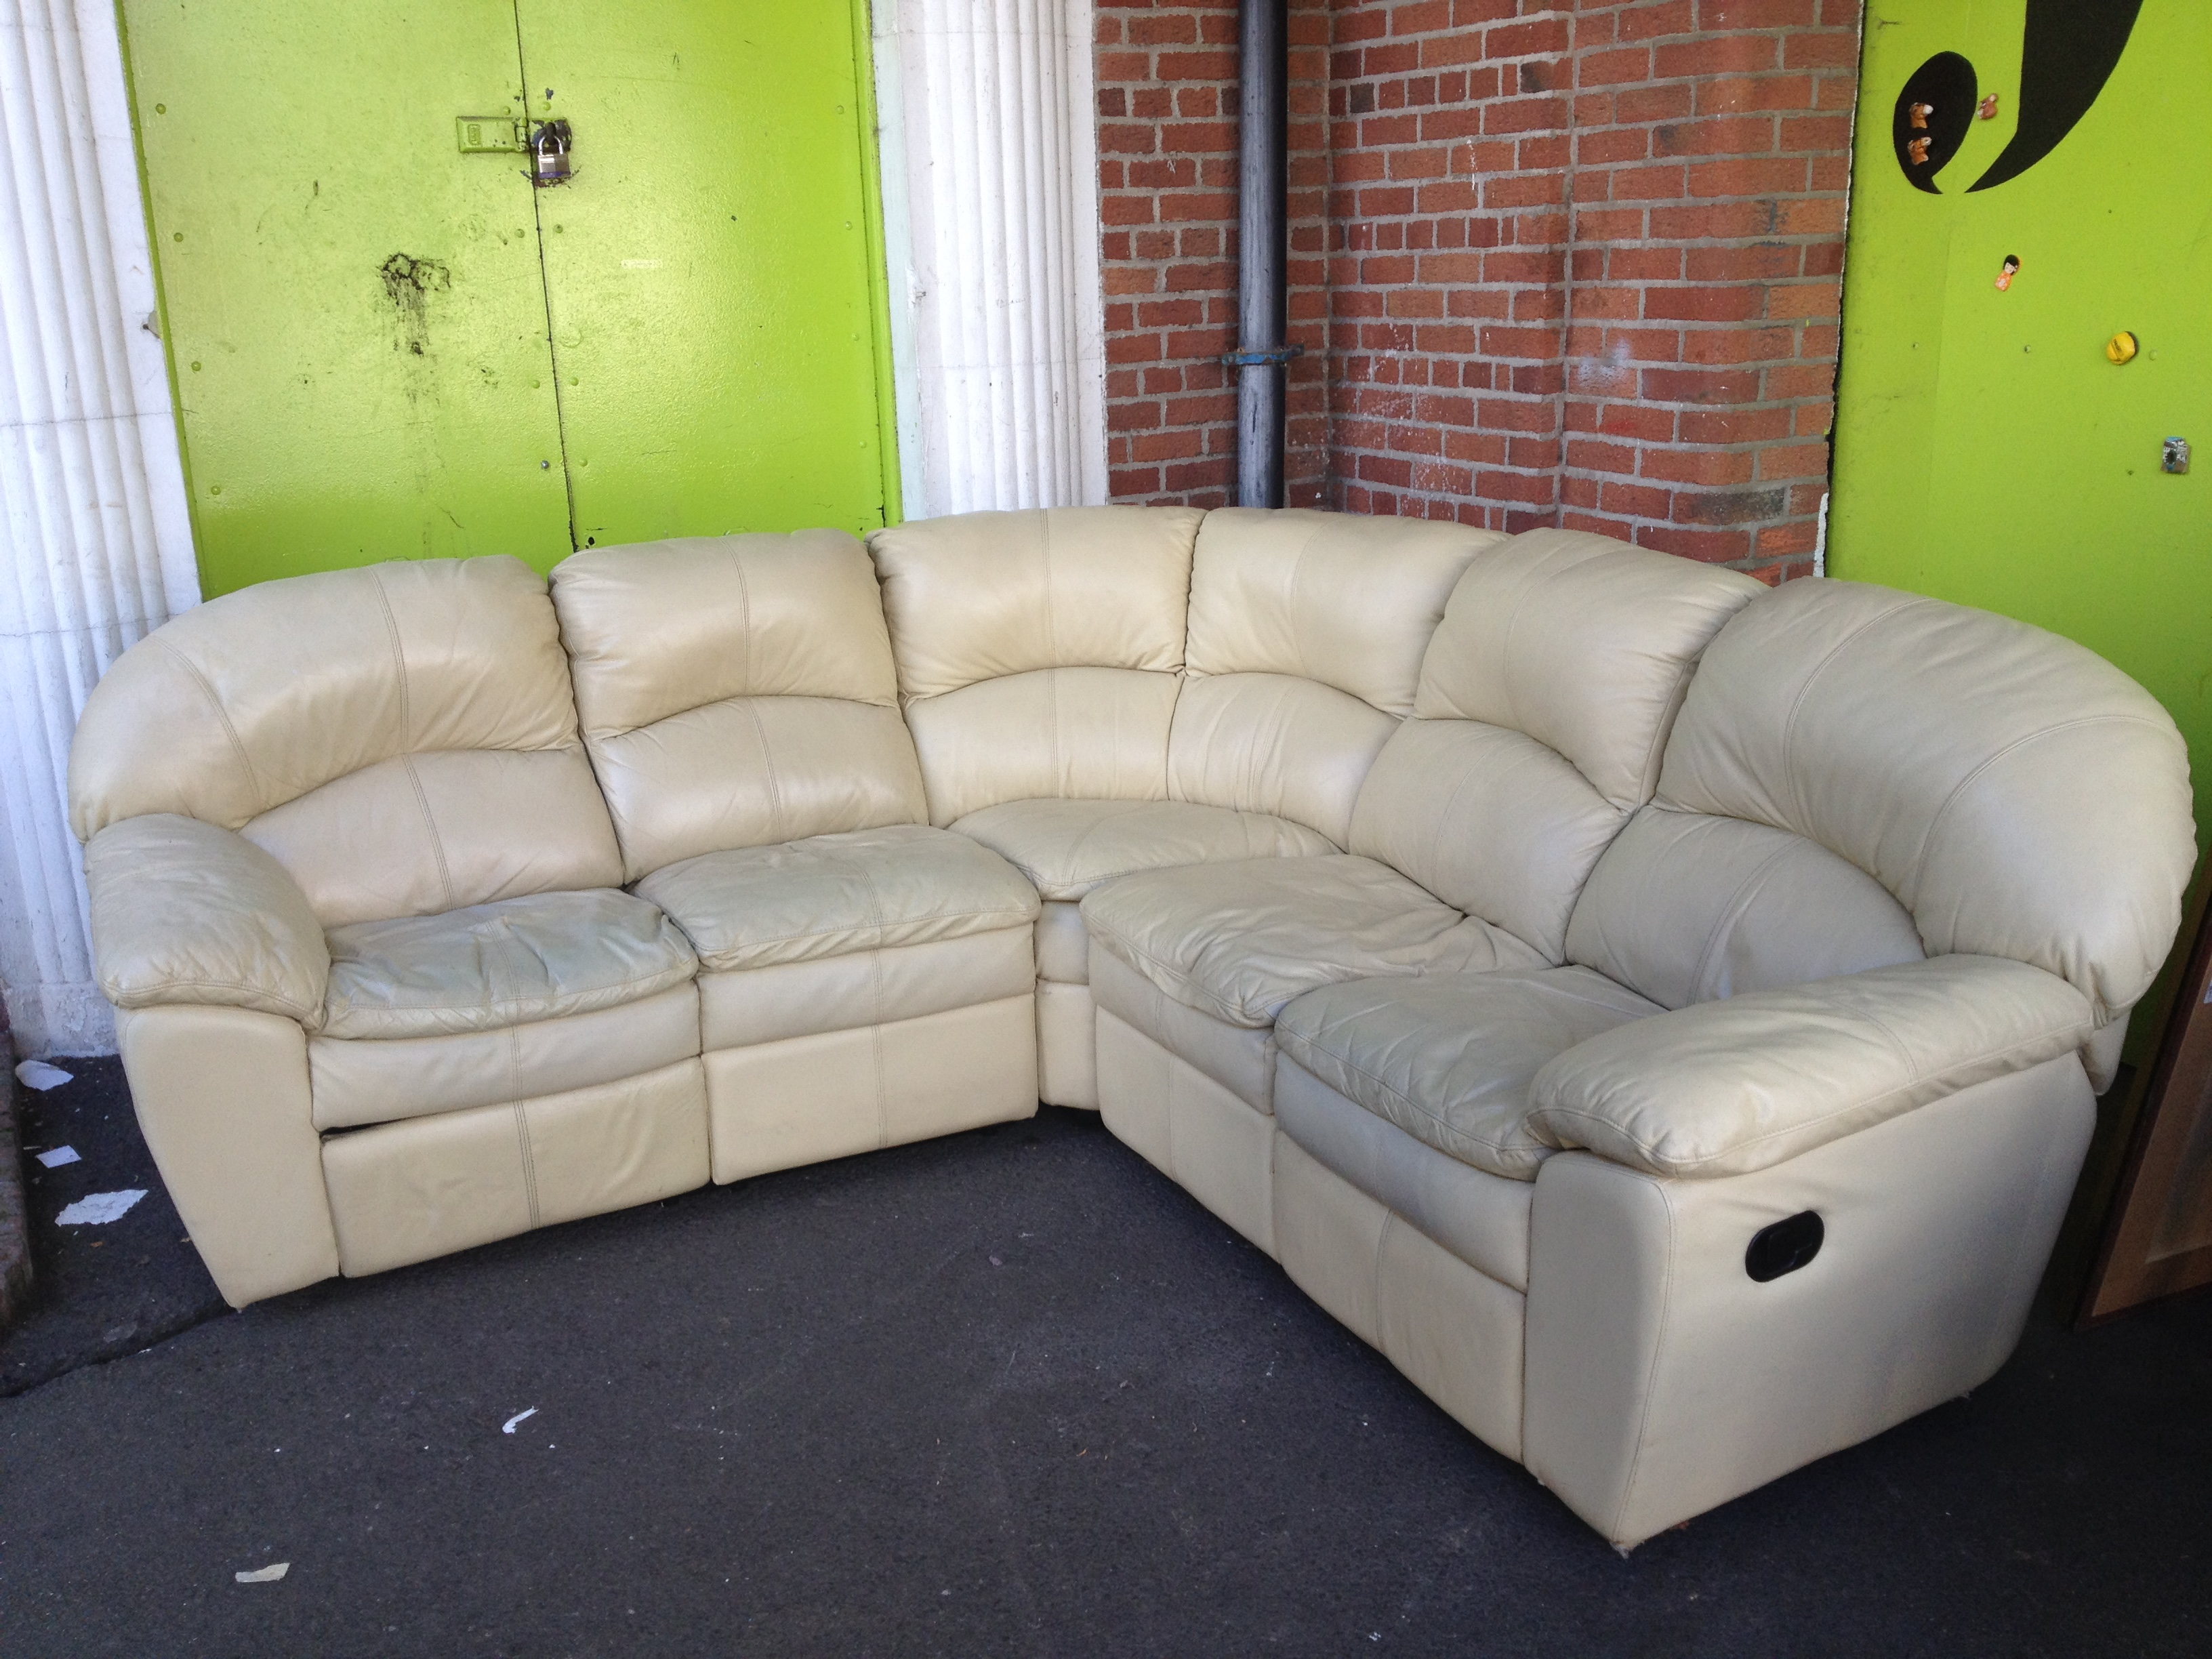 2nd hand sofas for sale buy cheap sofas and couches in for Cheap couches